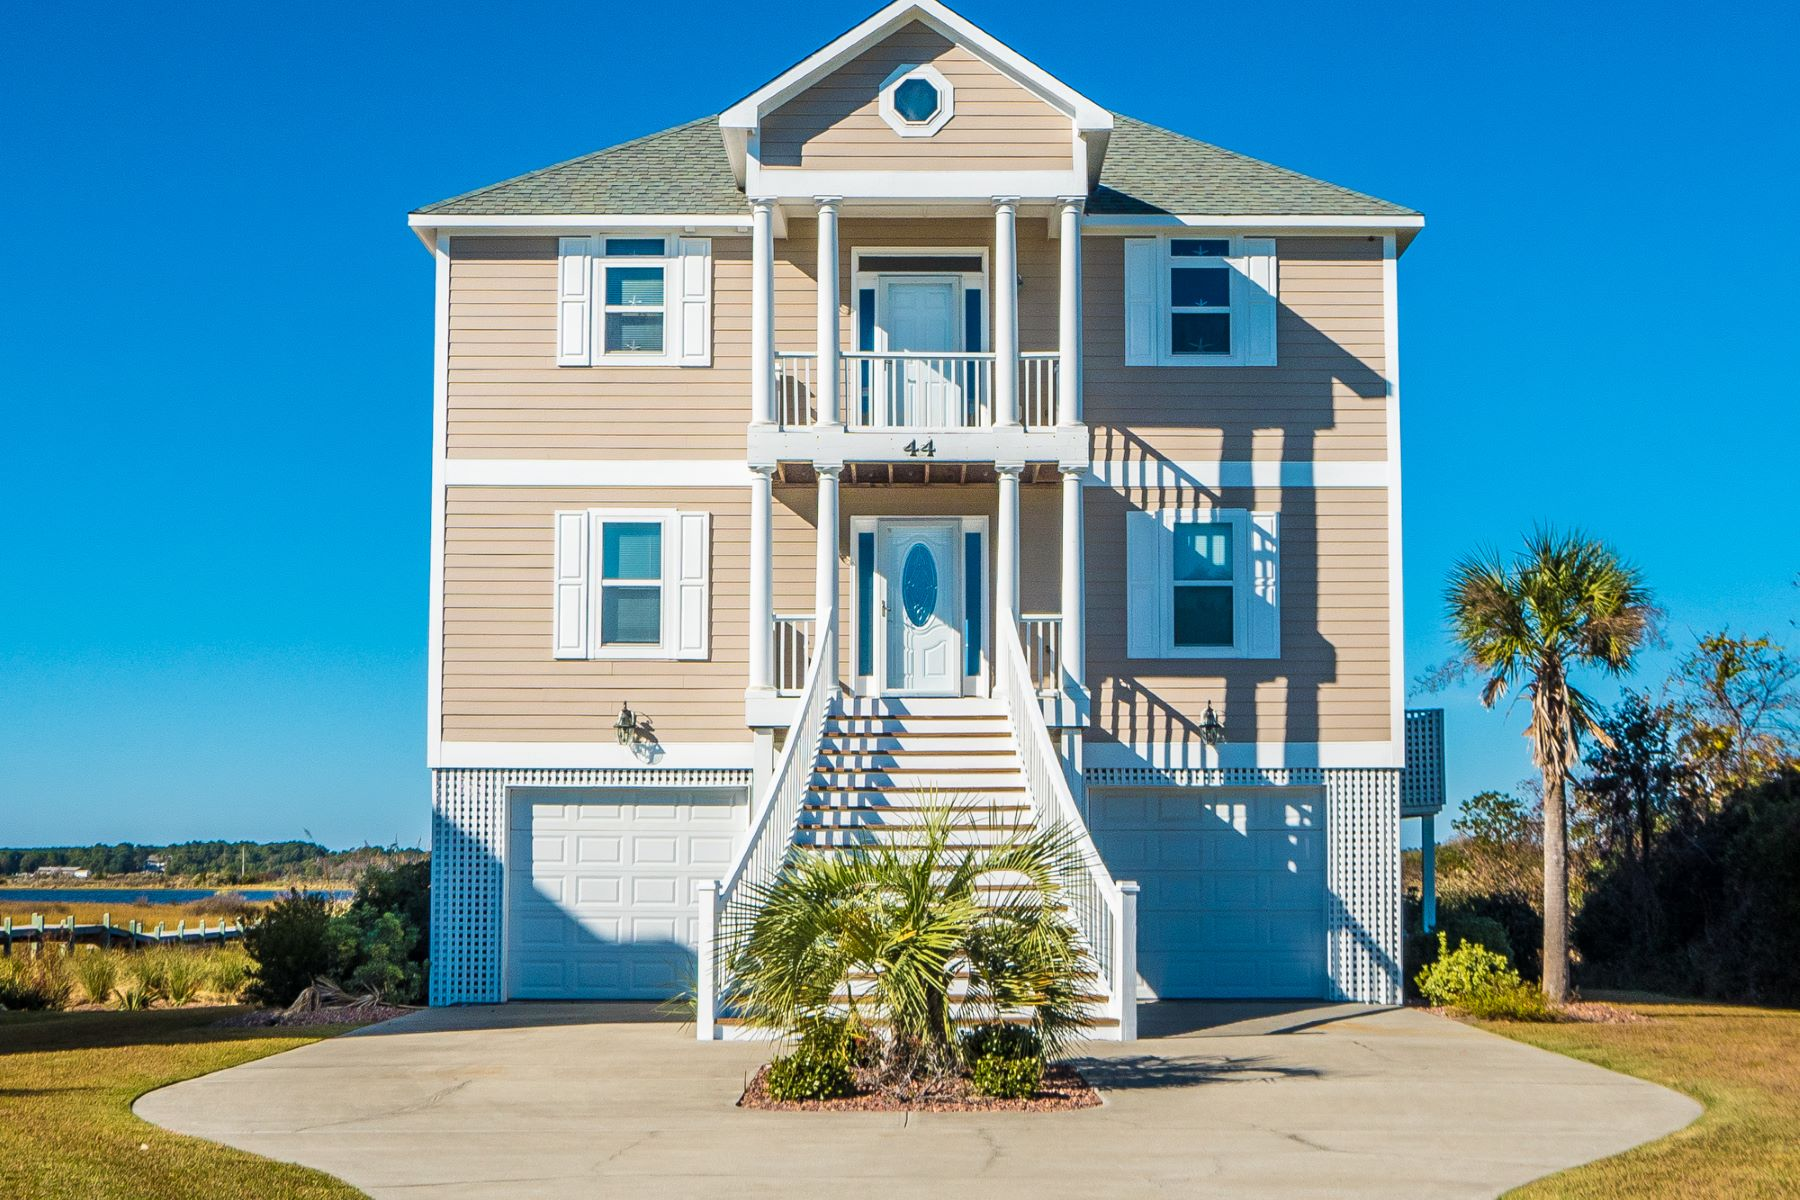 Single Family Home for Sale at Captivating Waterfront on Cape Island 44 Sailview Drive N Topsail Beach, North Carolina, 28460 United States